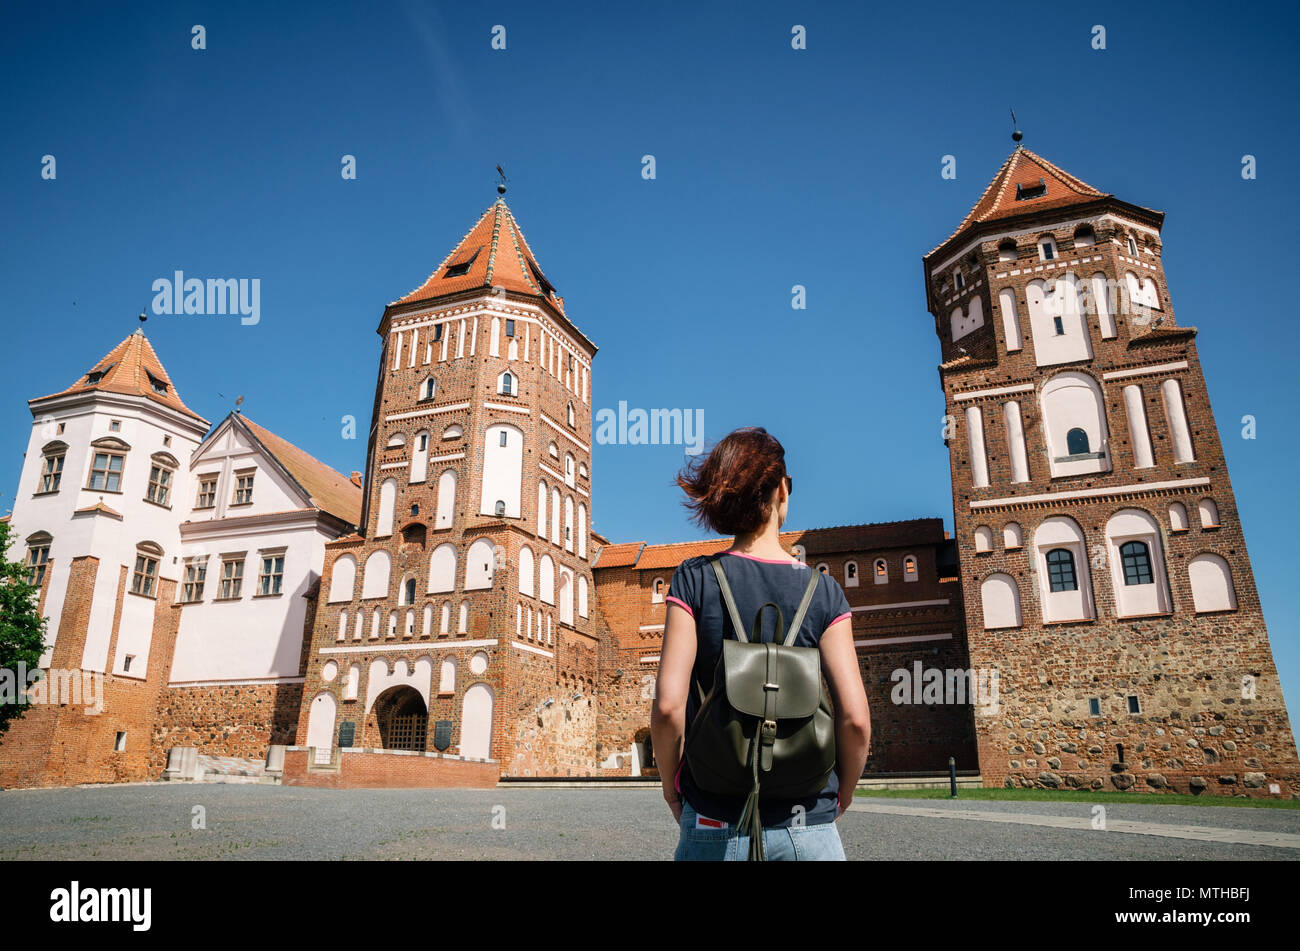 Young woman traveler with backpack looks at Medieval castle in Mir, Belarus - Stock Image